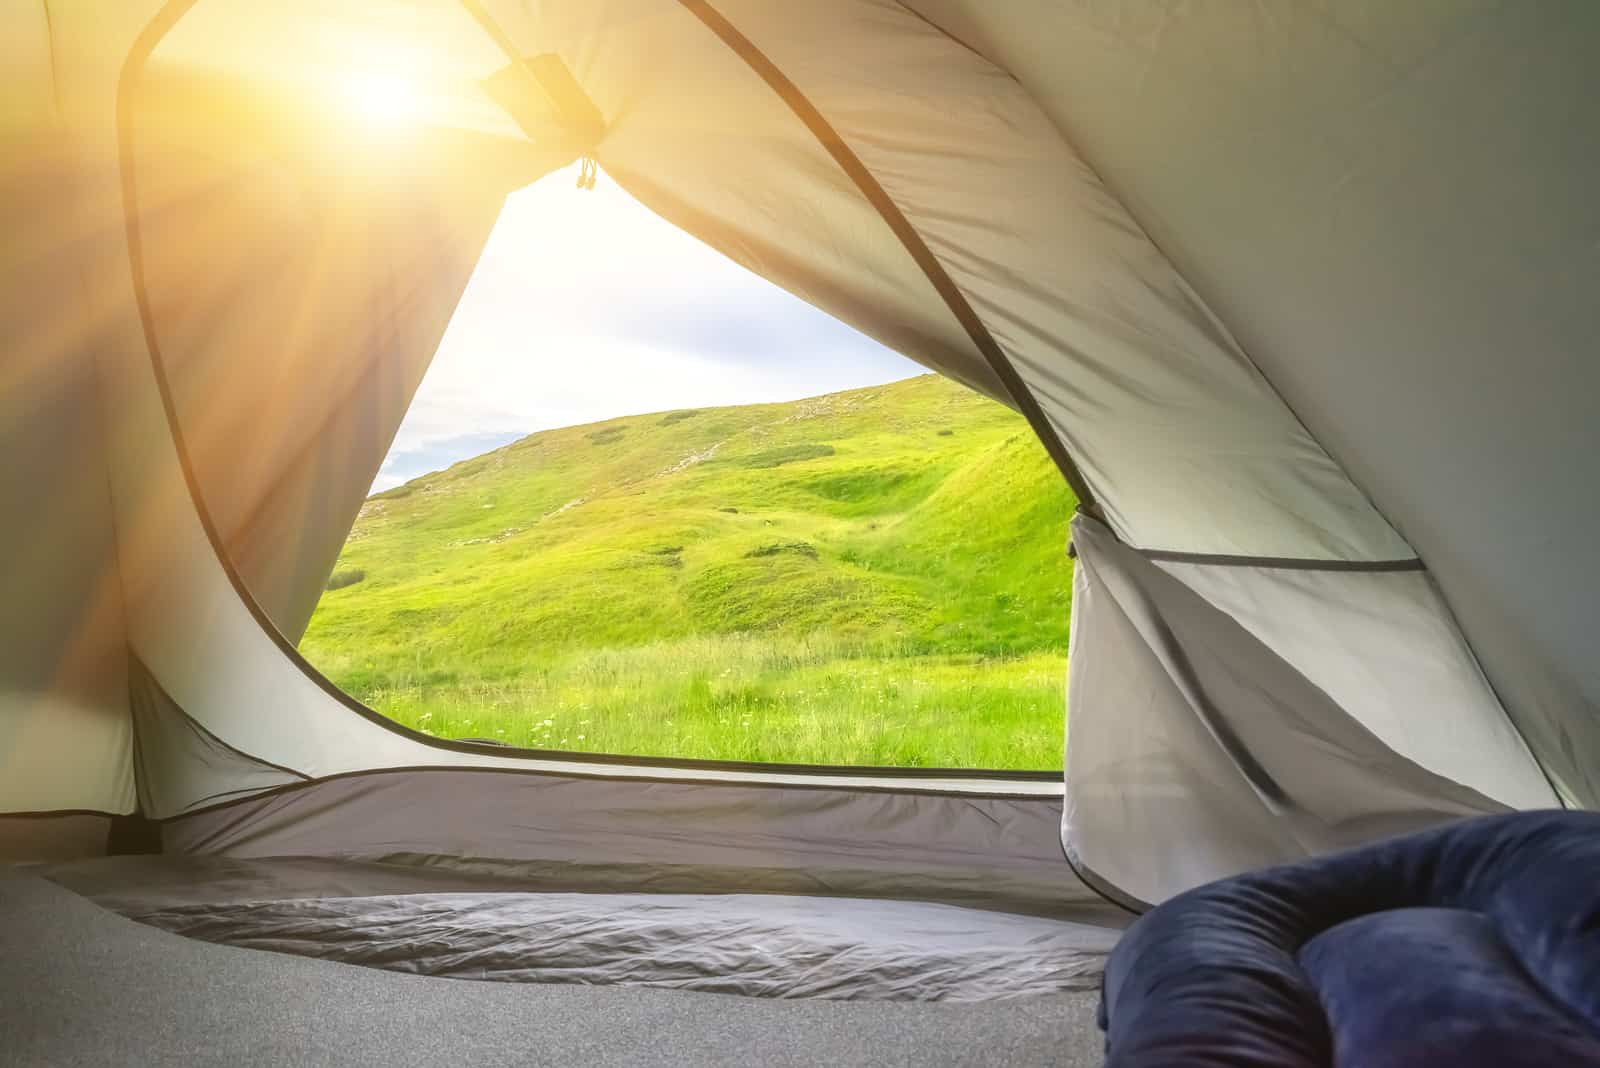 Best Camping Pillow in 2020: A Detailed Buyer's Guide